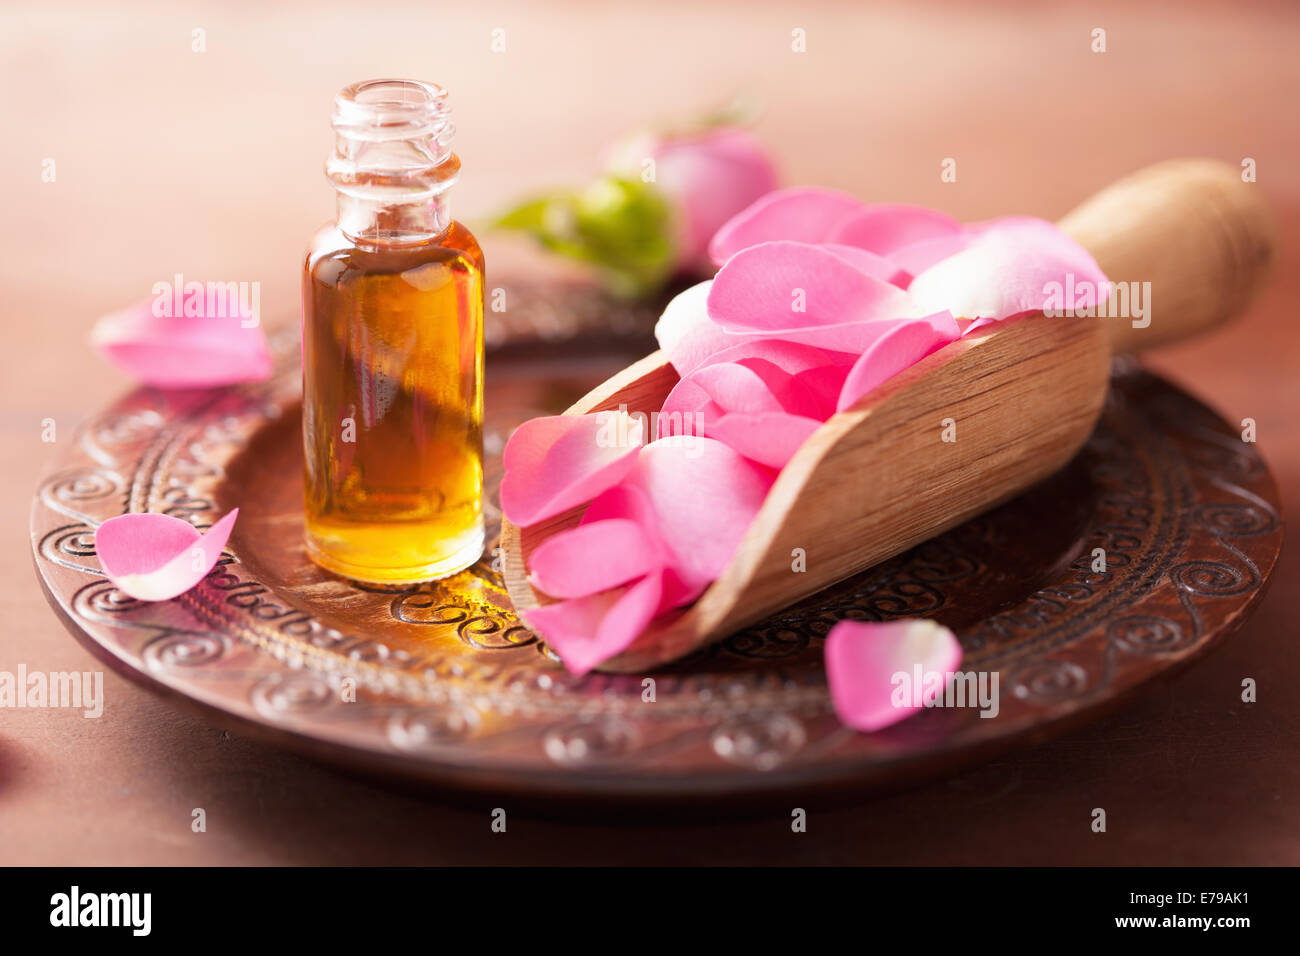 rose flower and essential oil. spa and aromatherapy - Stock Image